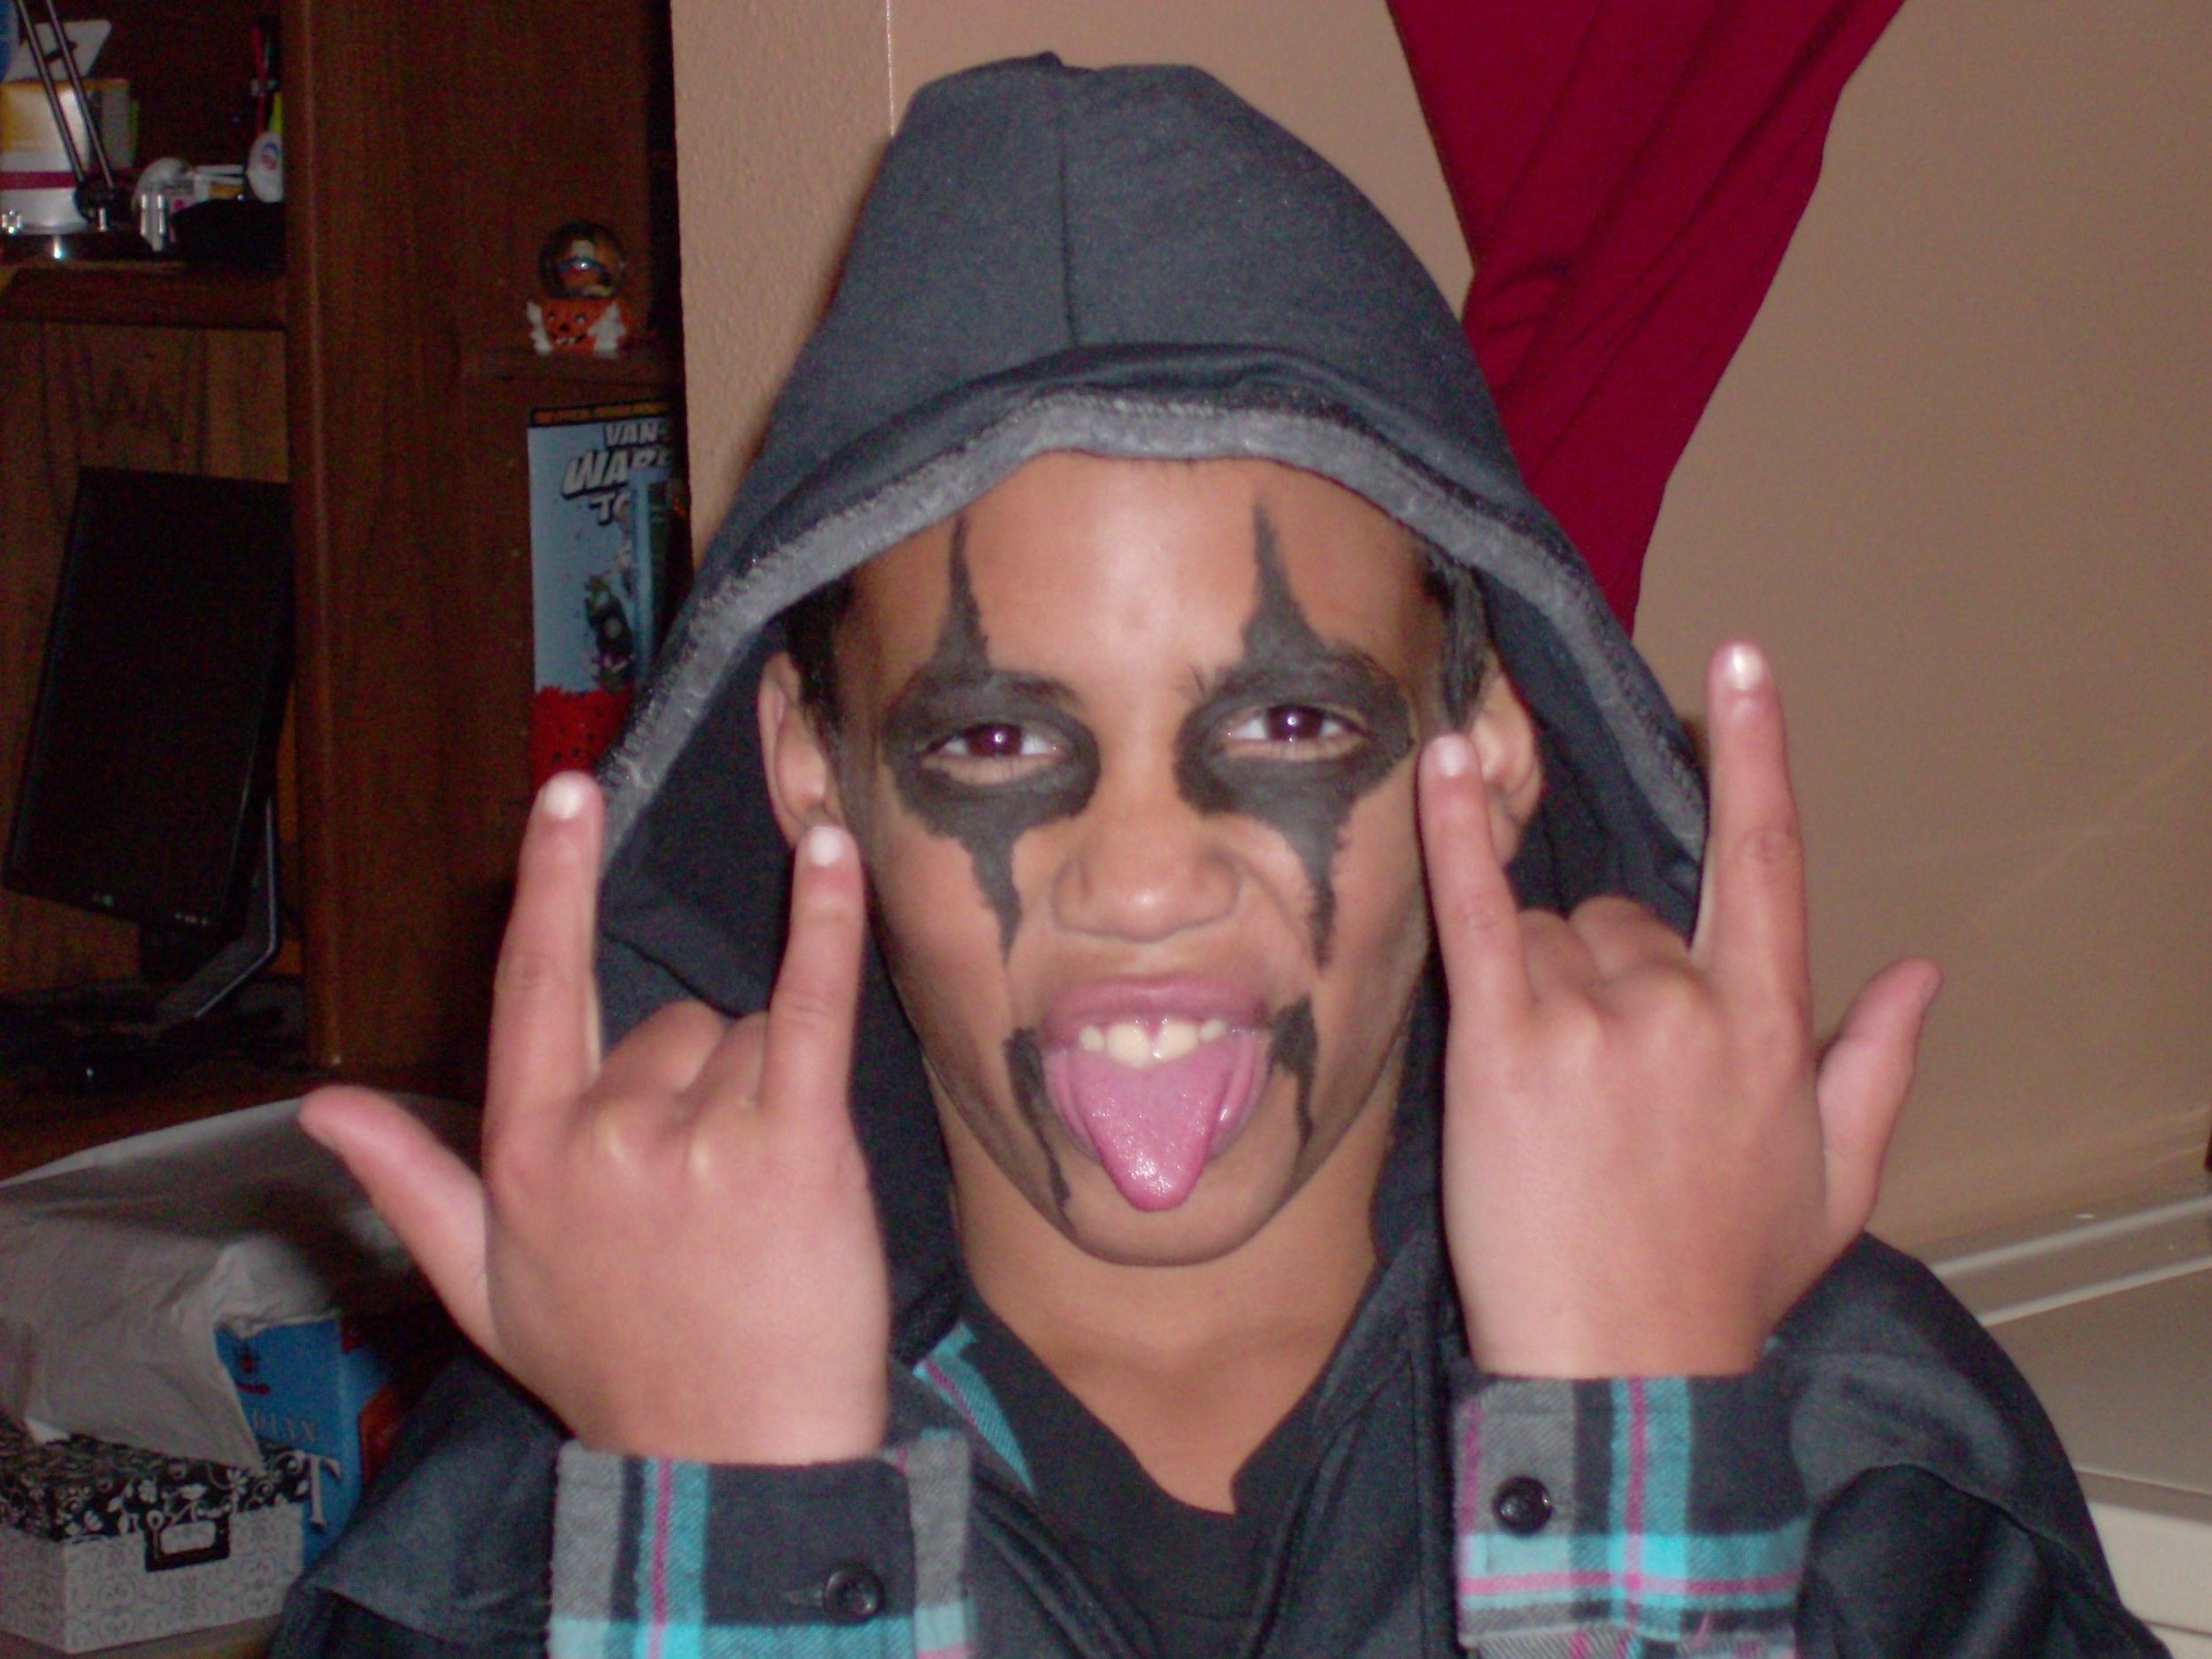 My Son... When he was to young to know what I dressed him up as for Halloween. I got tired of him being Batman 3 years in a row...